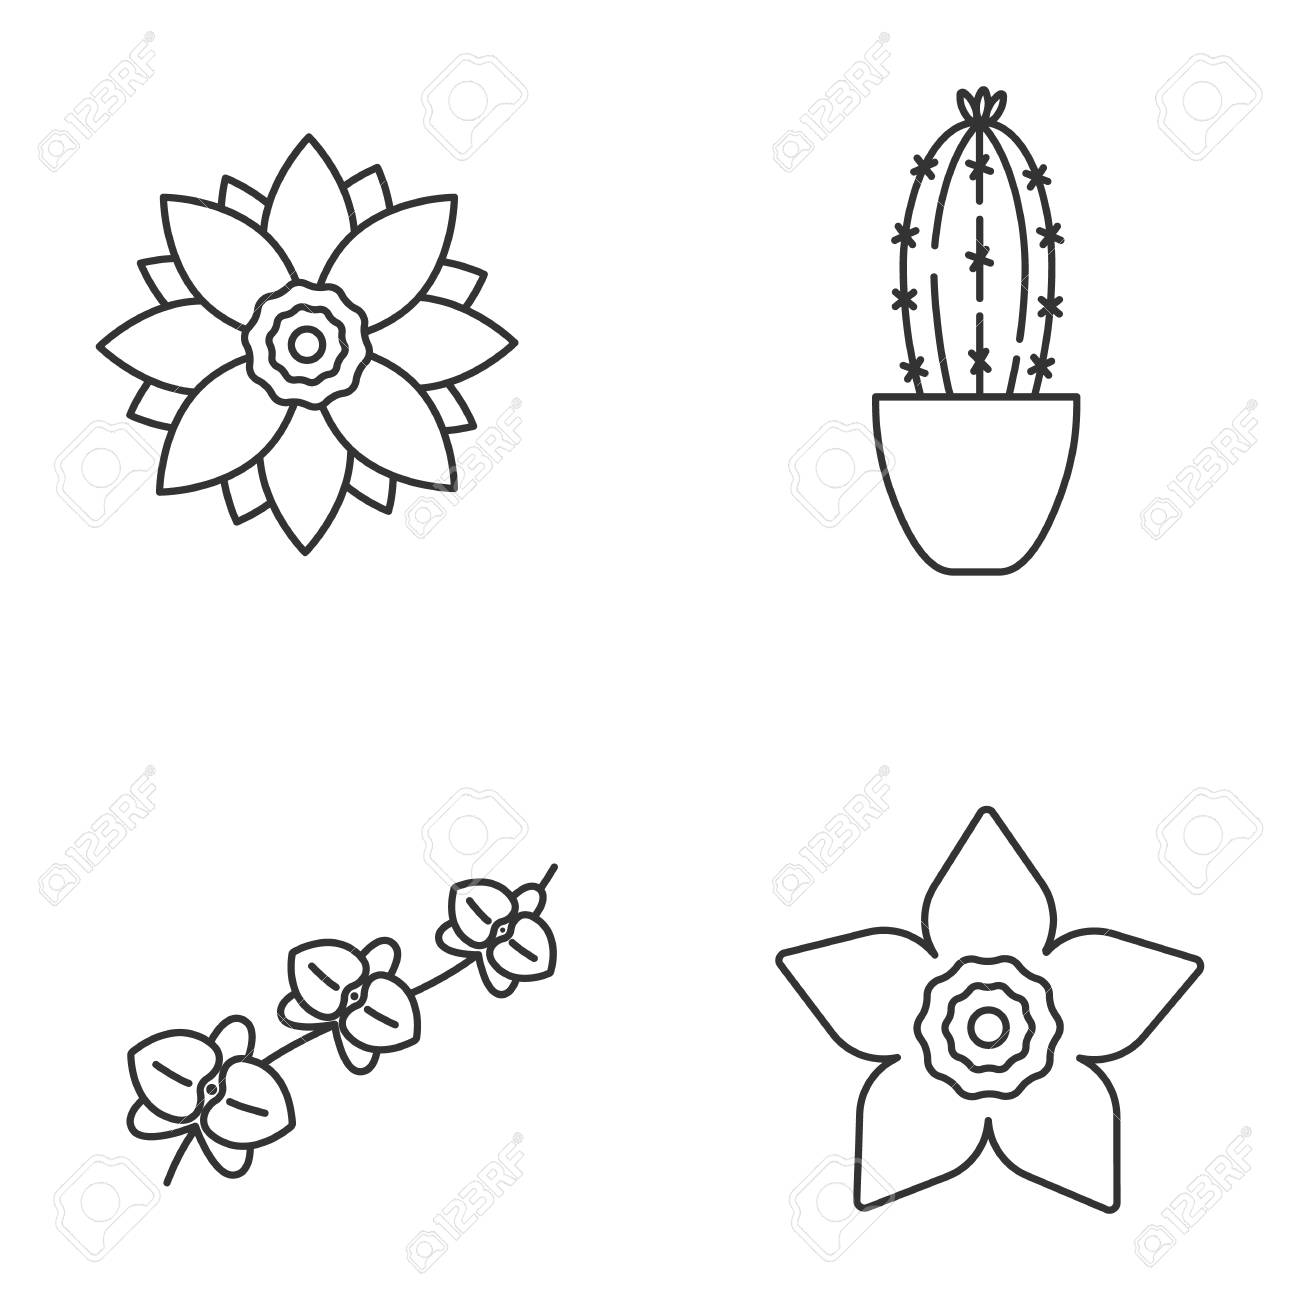 Flowers linear icons set. Lotus, narcissus, orchid, branch, cactus...